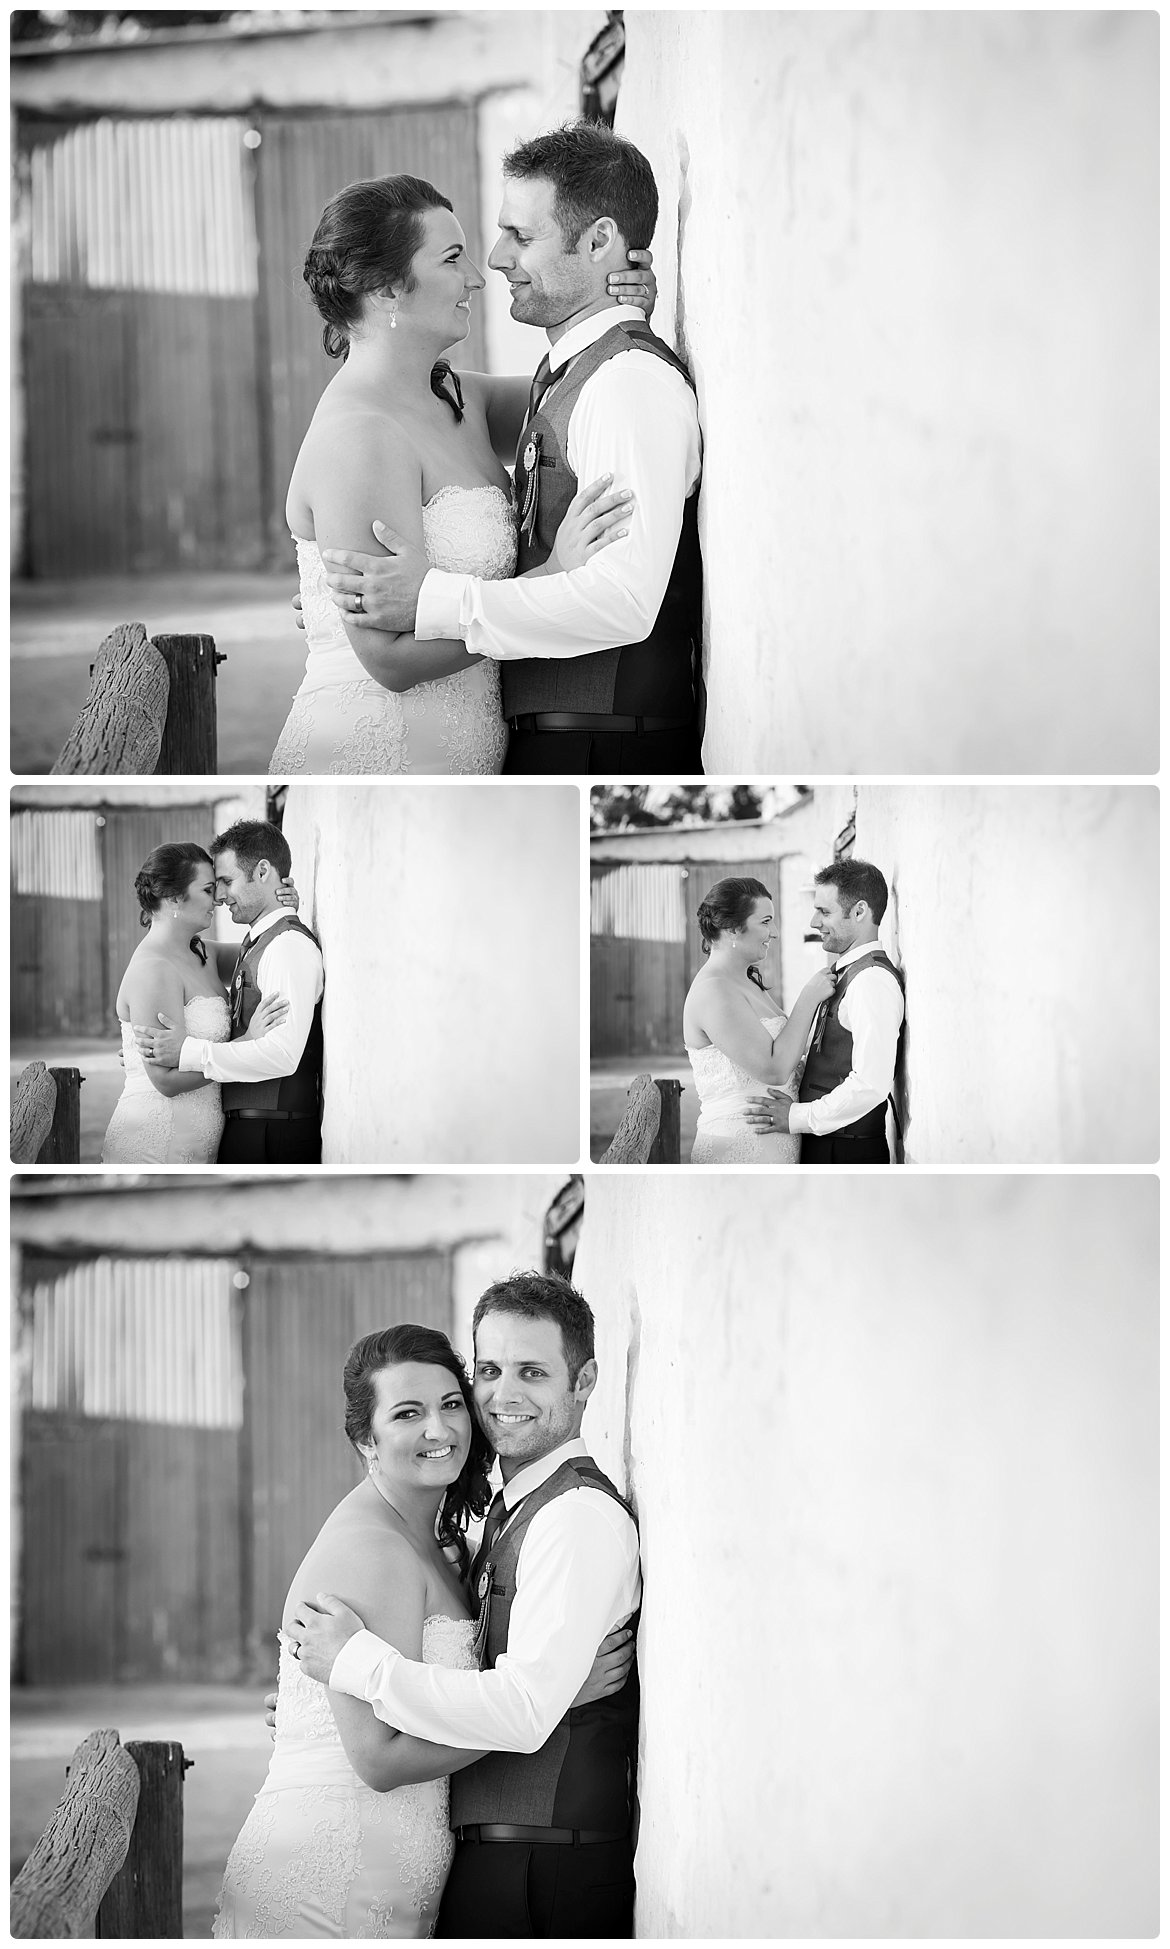 cape-town-wedding-photographer-schaftplaas-langebaan-0031